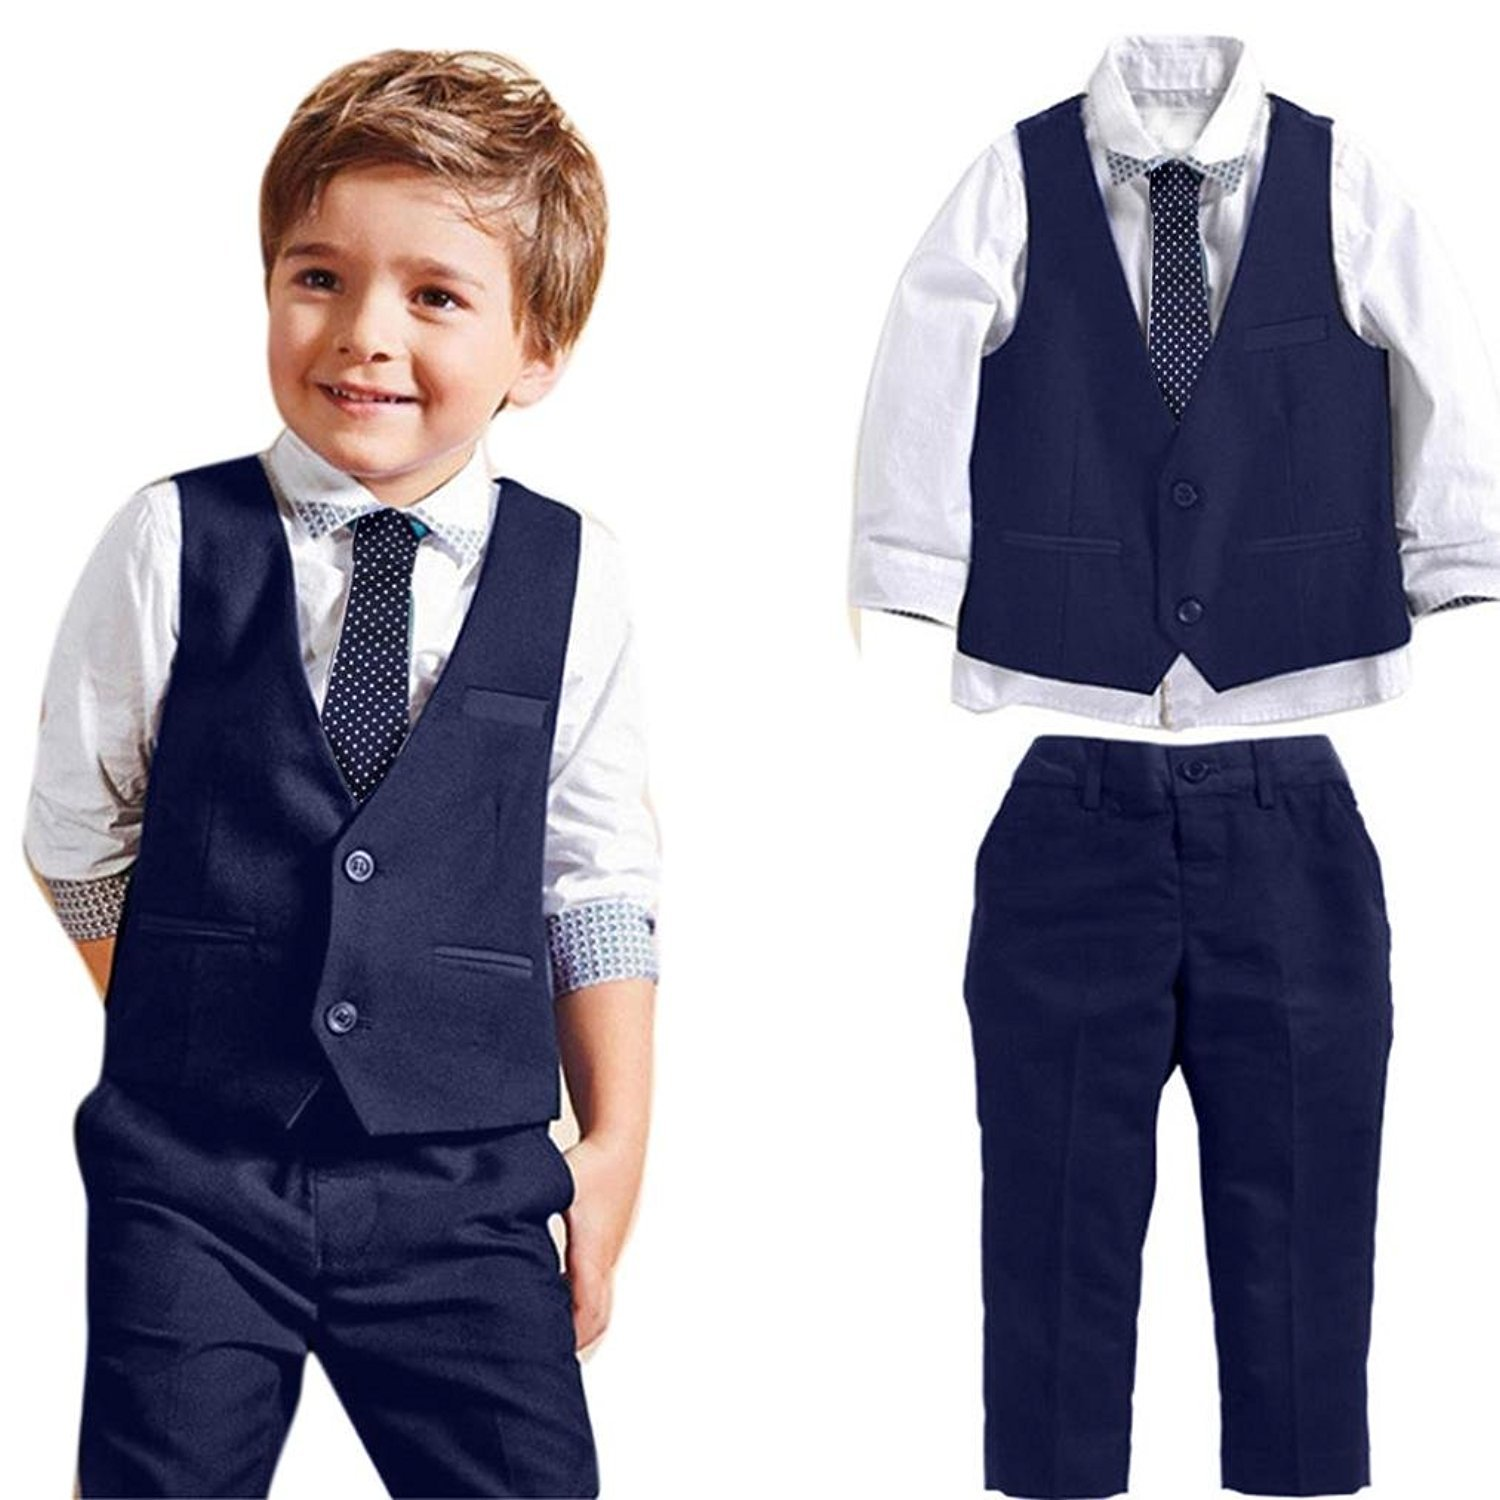 BUYEONLINE 1Set Kid Boys Gentleman Wedding Suits Shirts+Vest+Pants+Tie Boys Clothes